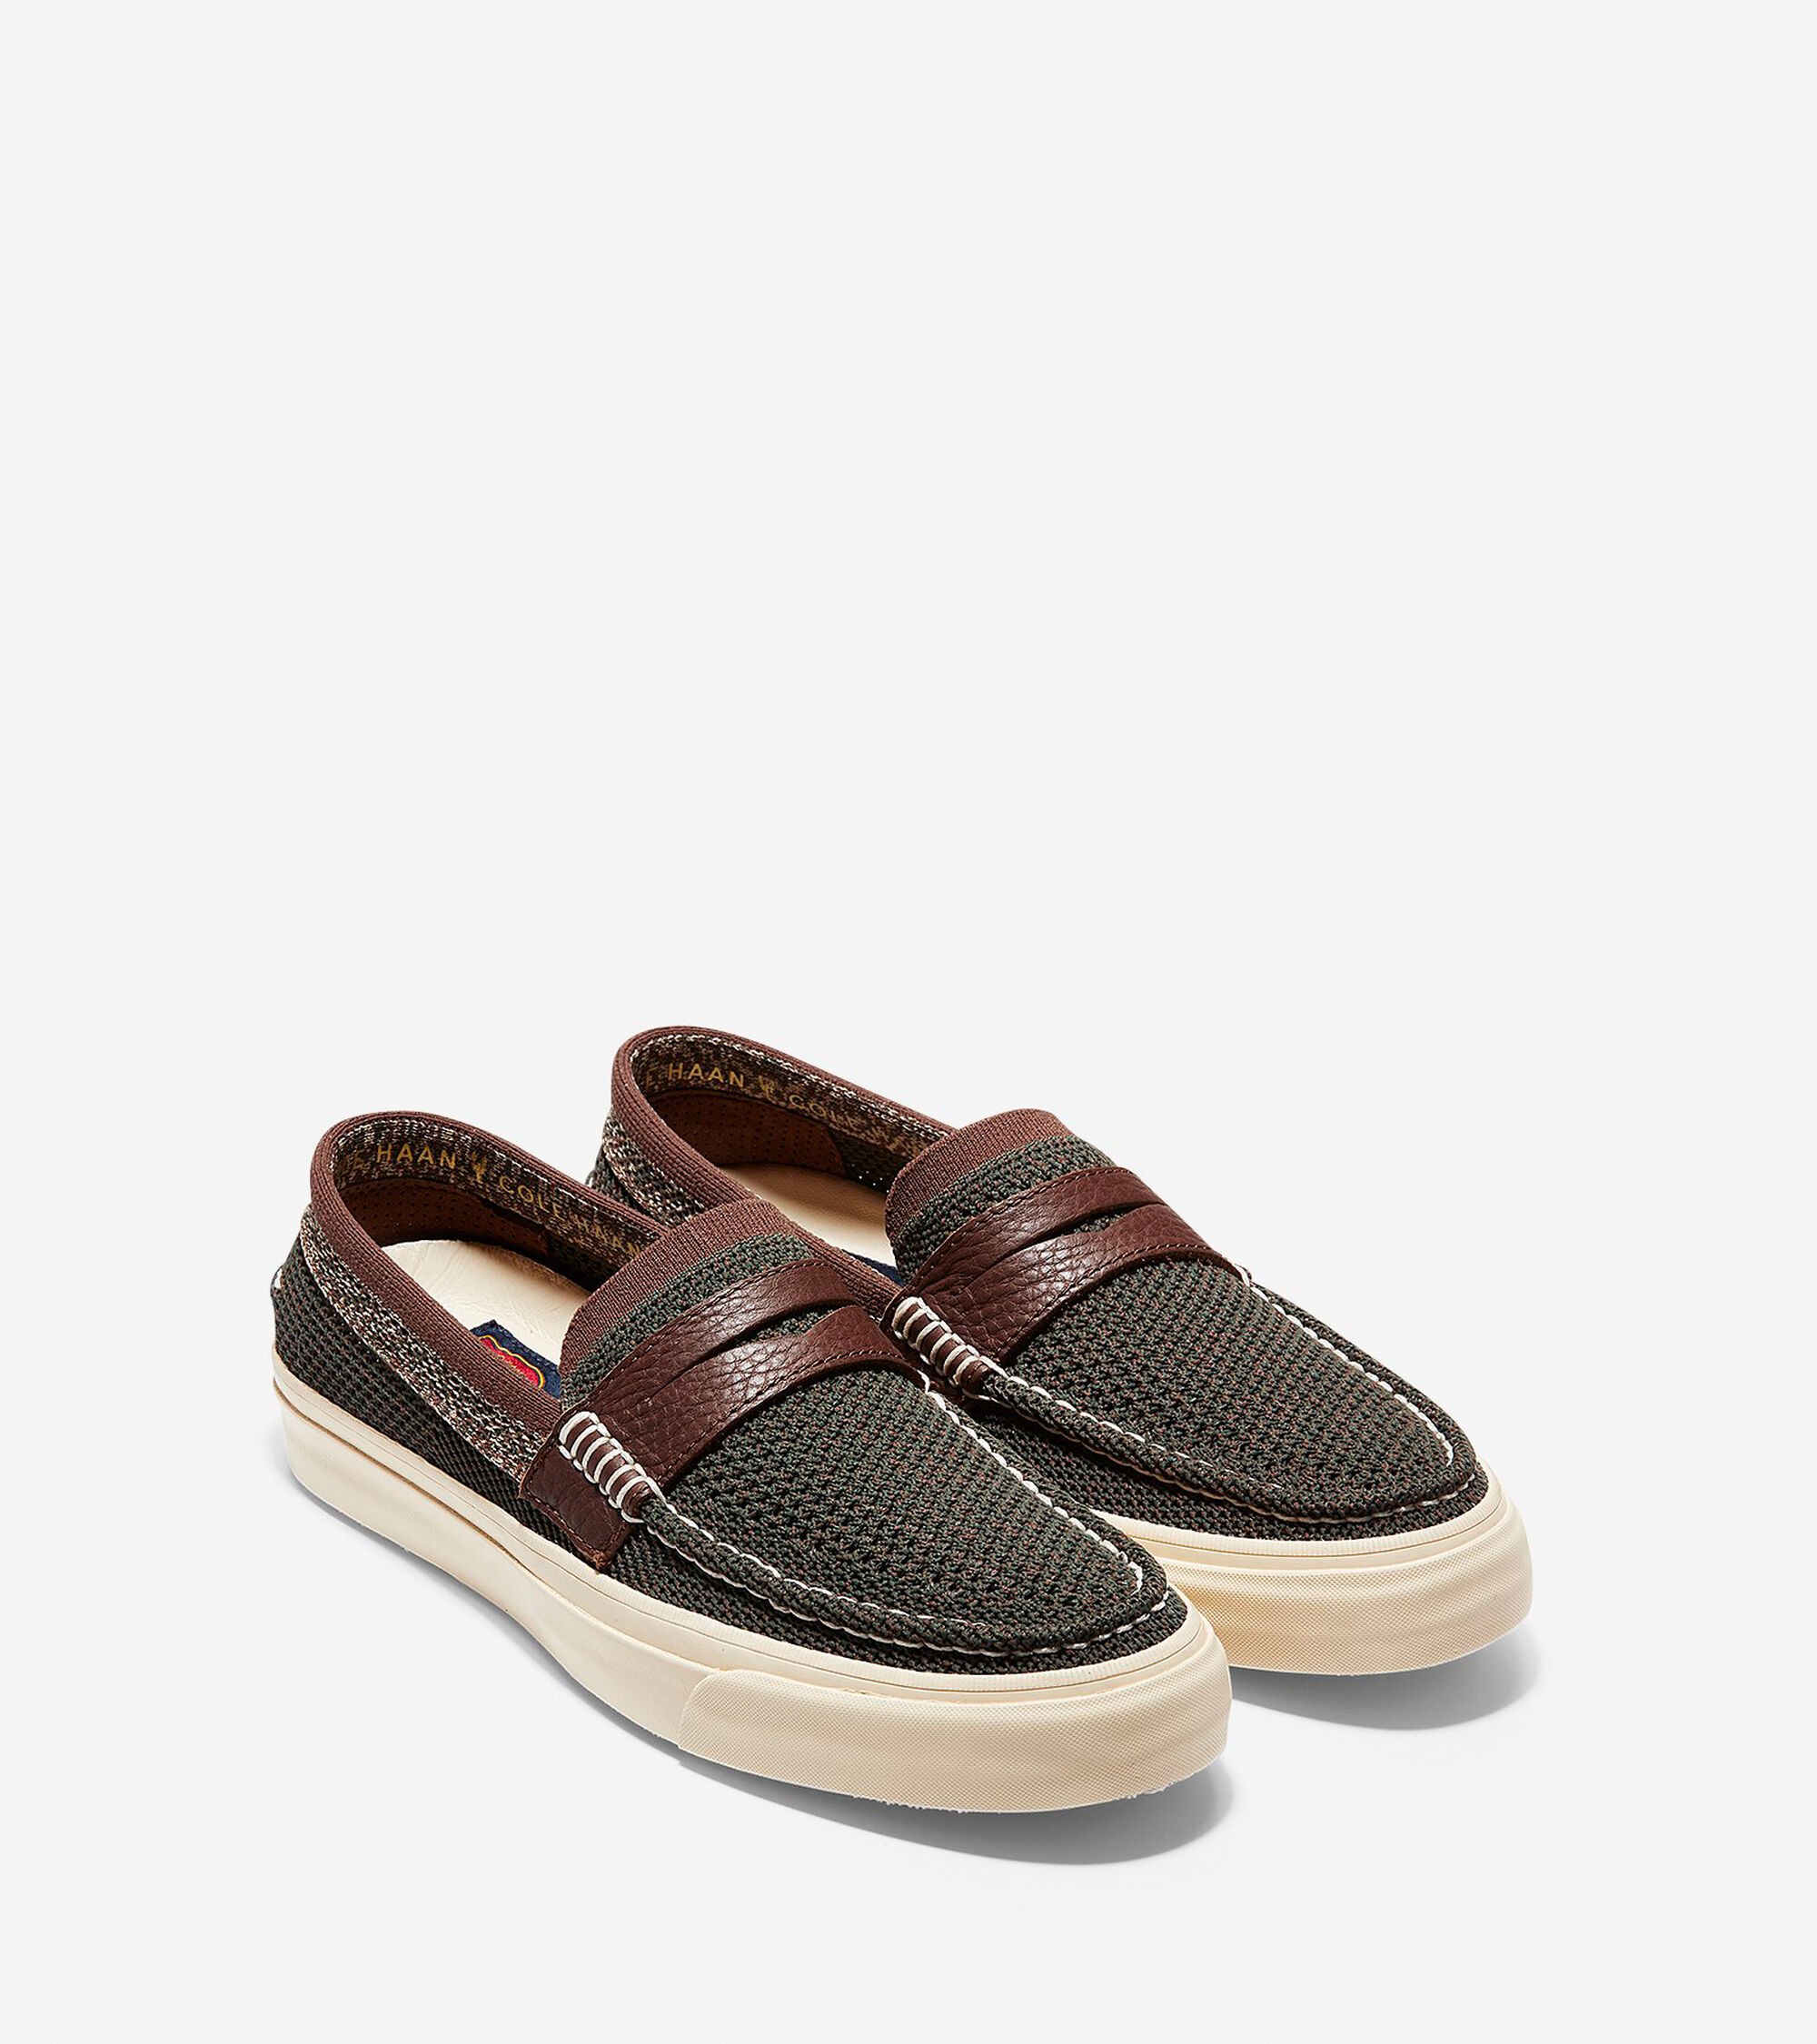 a1a90800ce0 Men s Pinch Weekender LX Loafers with Stitchlite™ in Deep Forest ...